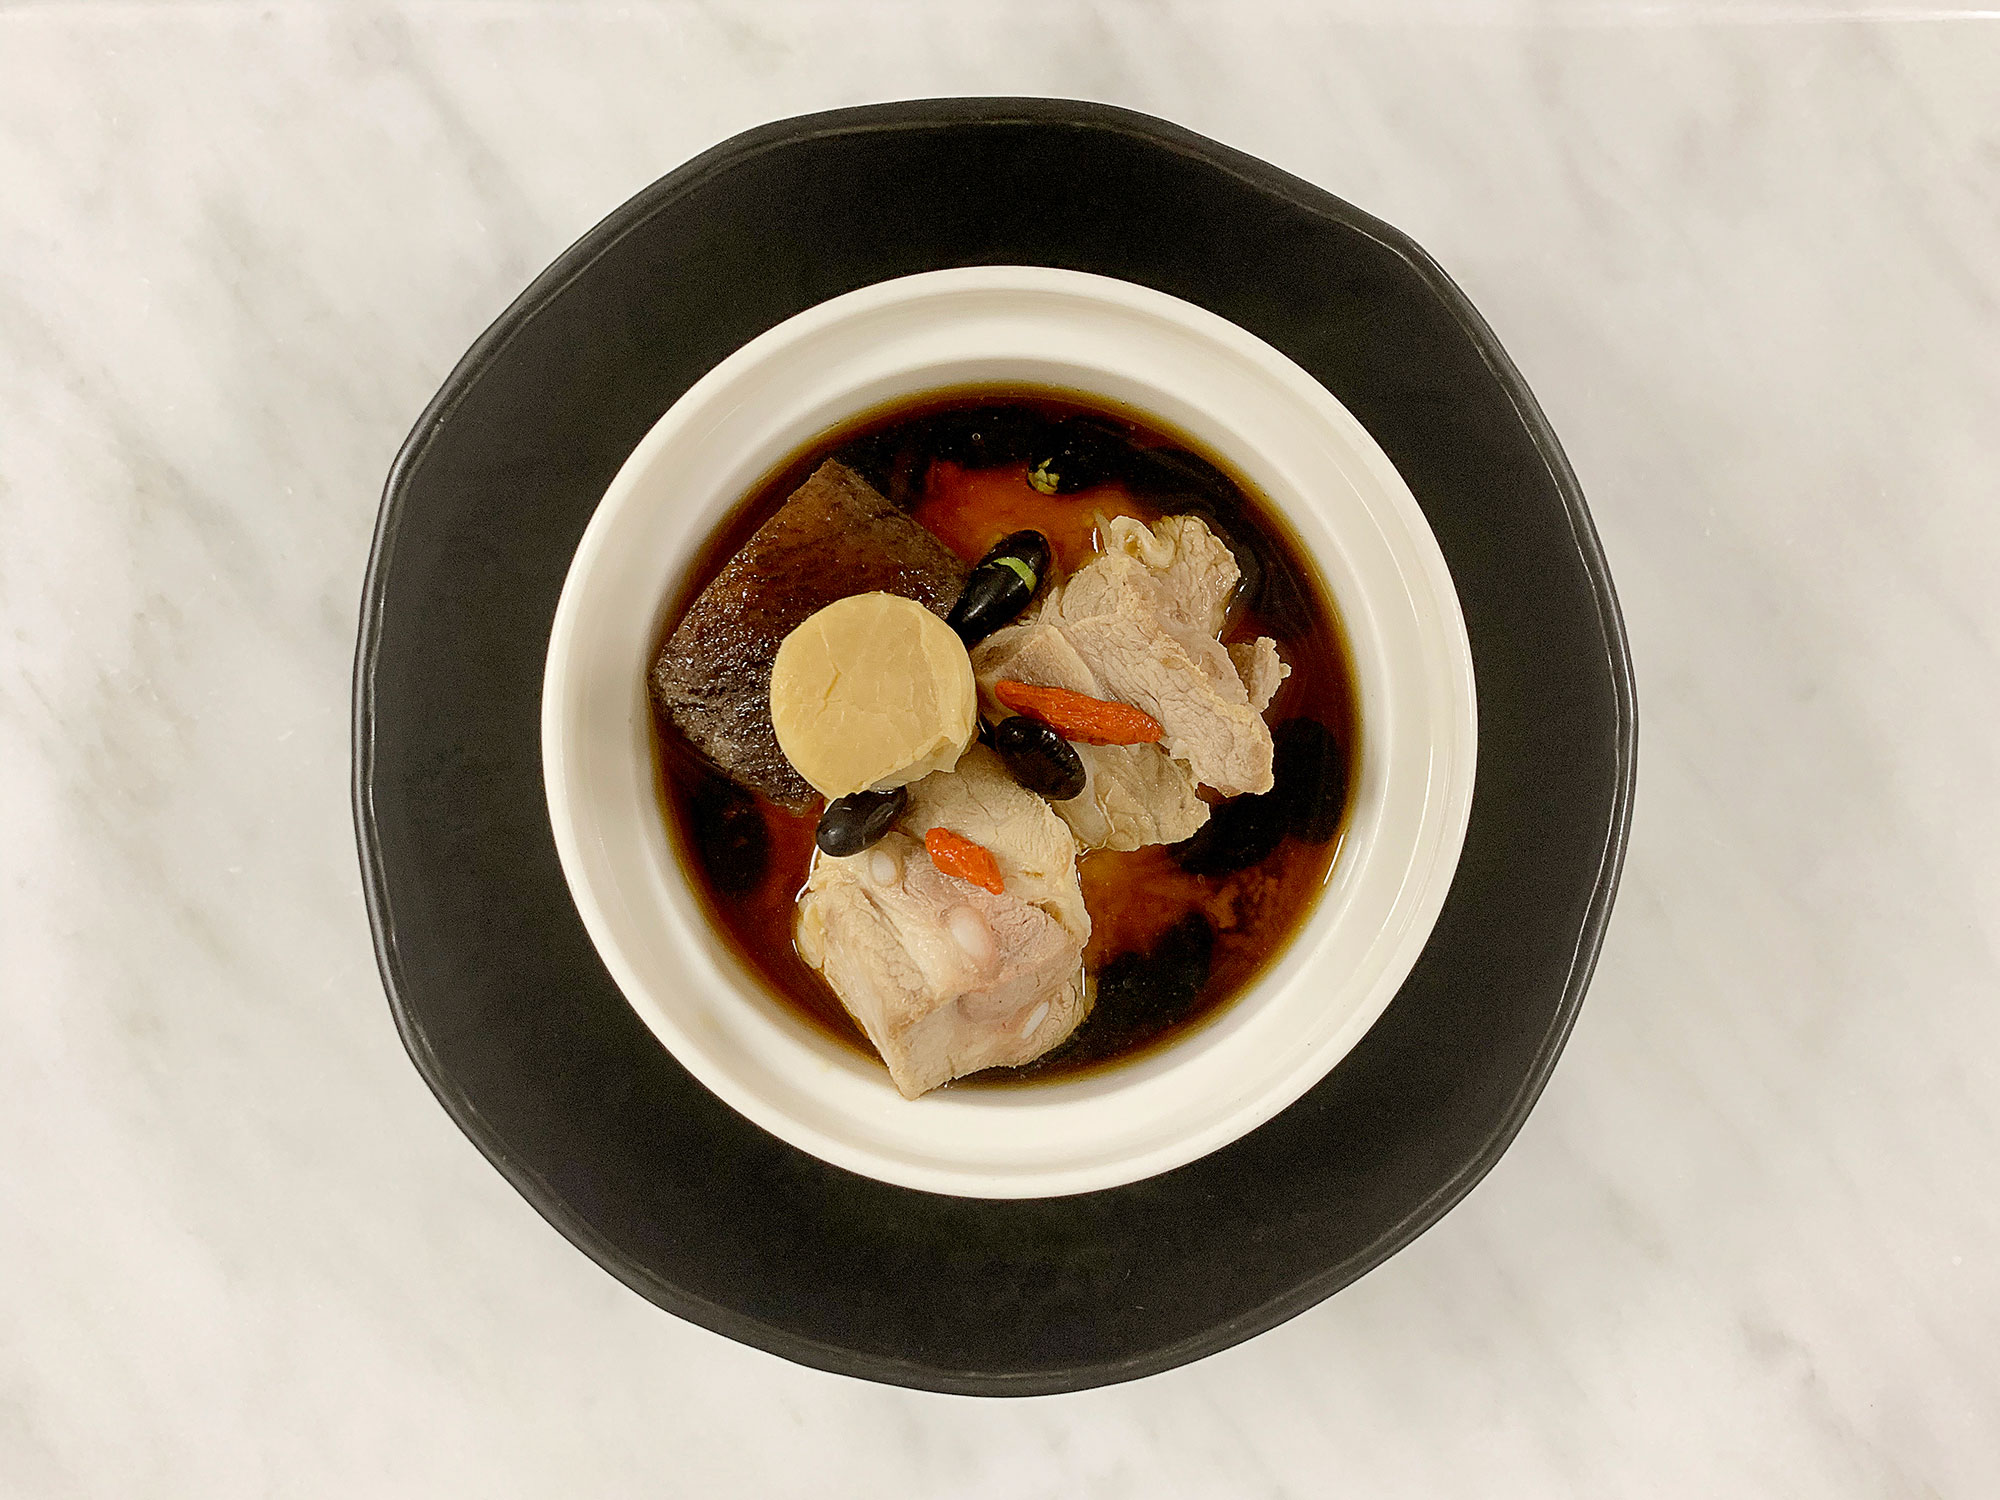 Double-boiled-Sea-Cucumber-Soup-with-Black-Bean-and-Chinese-Herbs